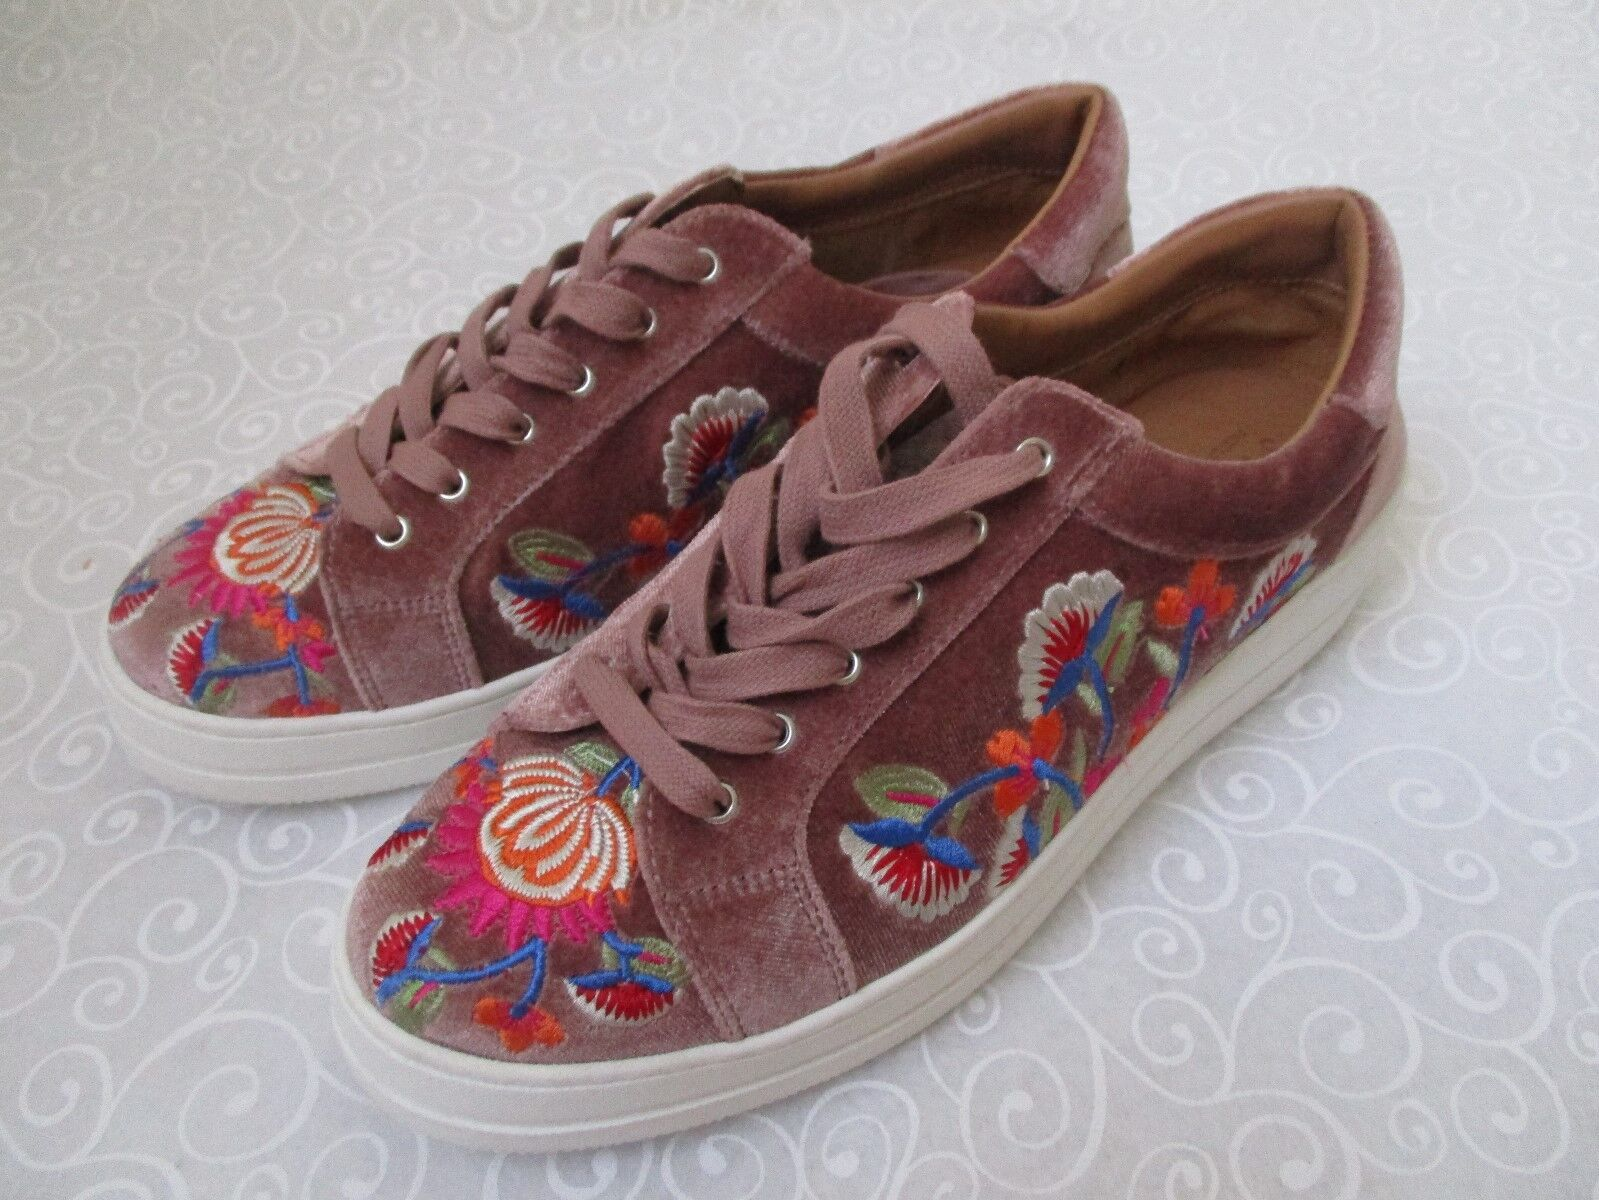 STEVNATURAL COMFORT NC NITRO BLUSH EMBROIDEROT 9 SNEAKERS Schuhe SIZE 9 EMBROIDEROT 1/2 M 62d4c4